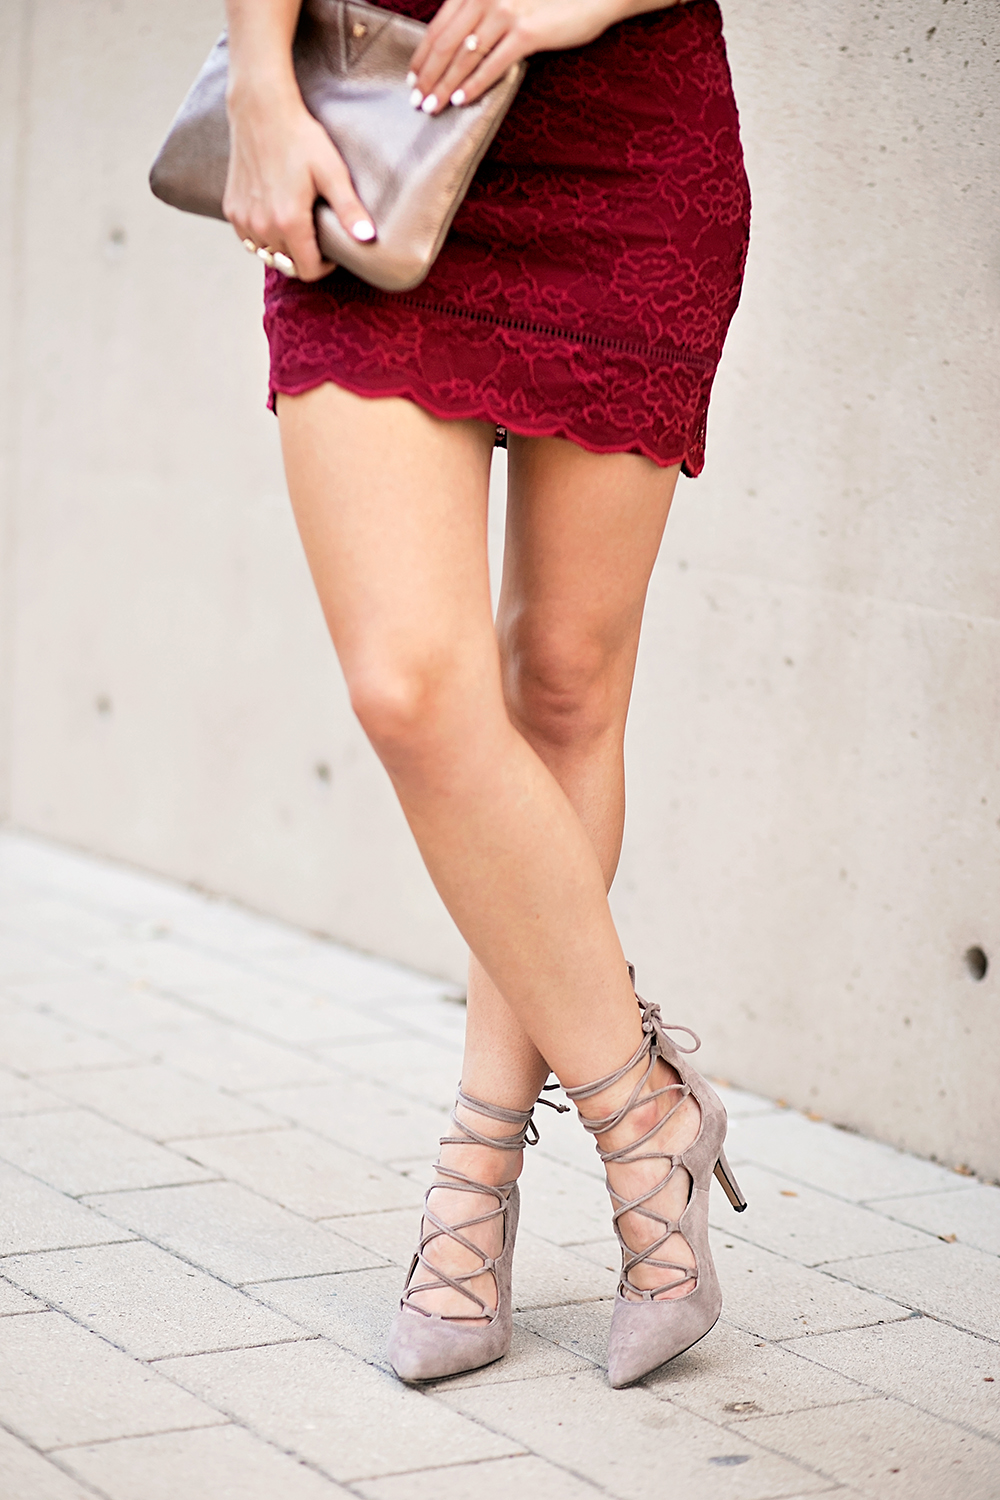 livvyland-blog-olivia-watson-holiday-red-lace-cocktail-dress-party-outfit-winter-holiday-office-nye-what-to-wear-lace-up-heels